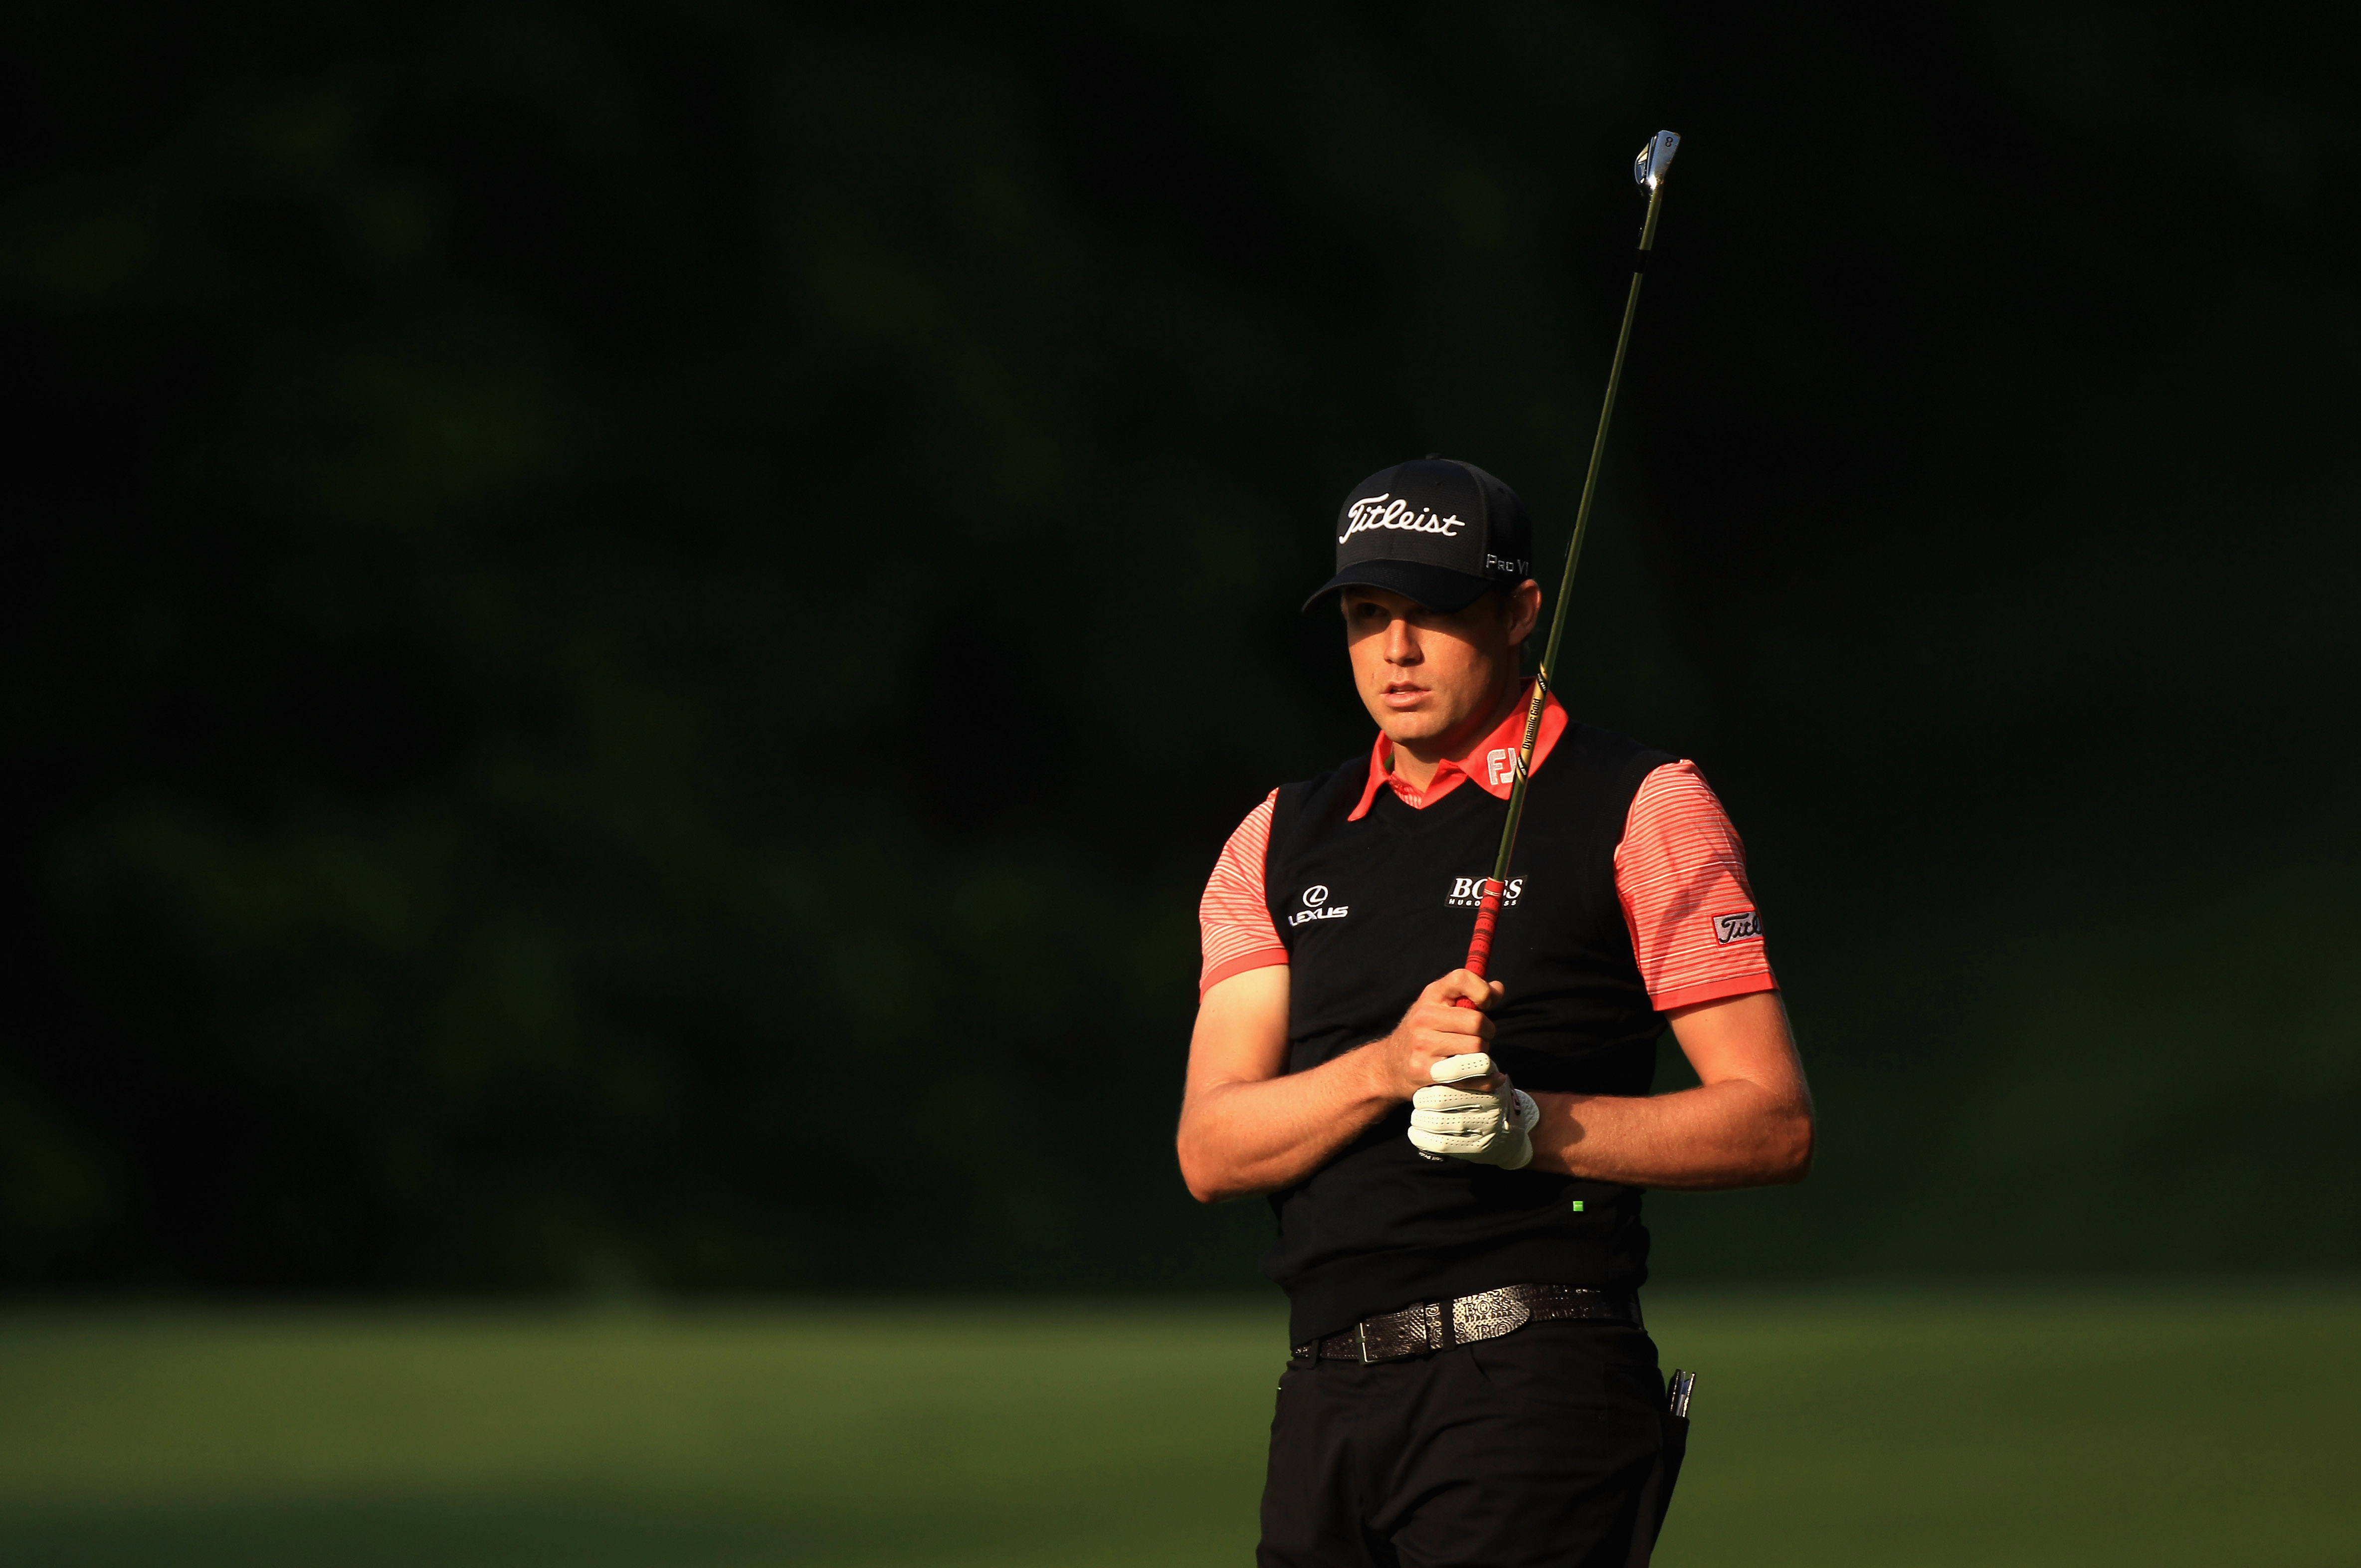 CHARLOTTE, NC - MAY 06:  Nick Watney during the second round of the Wells Fargo Championship at Quail Hollow Club on May 6, 2011 in Charlotte, North Carolina.  (Photo by Streeter Lecka/Getty Images)